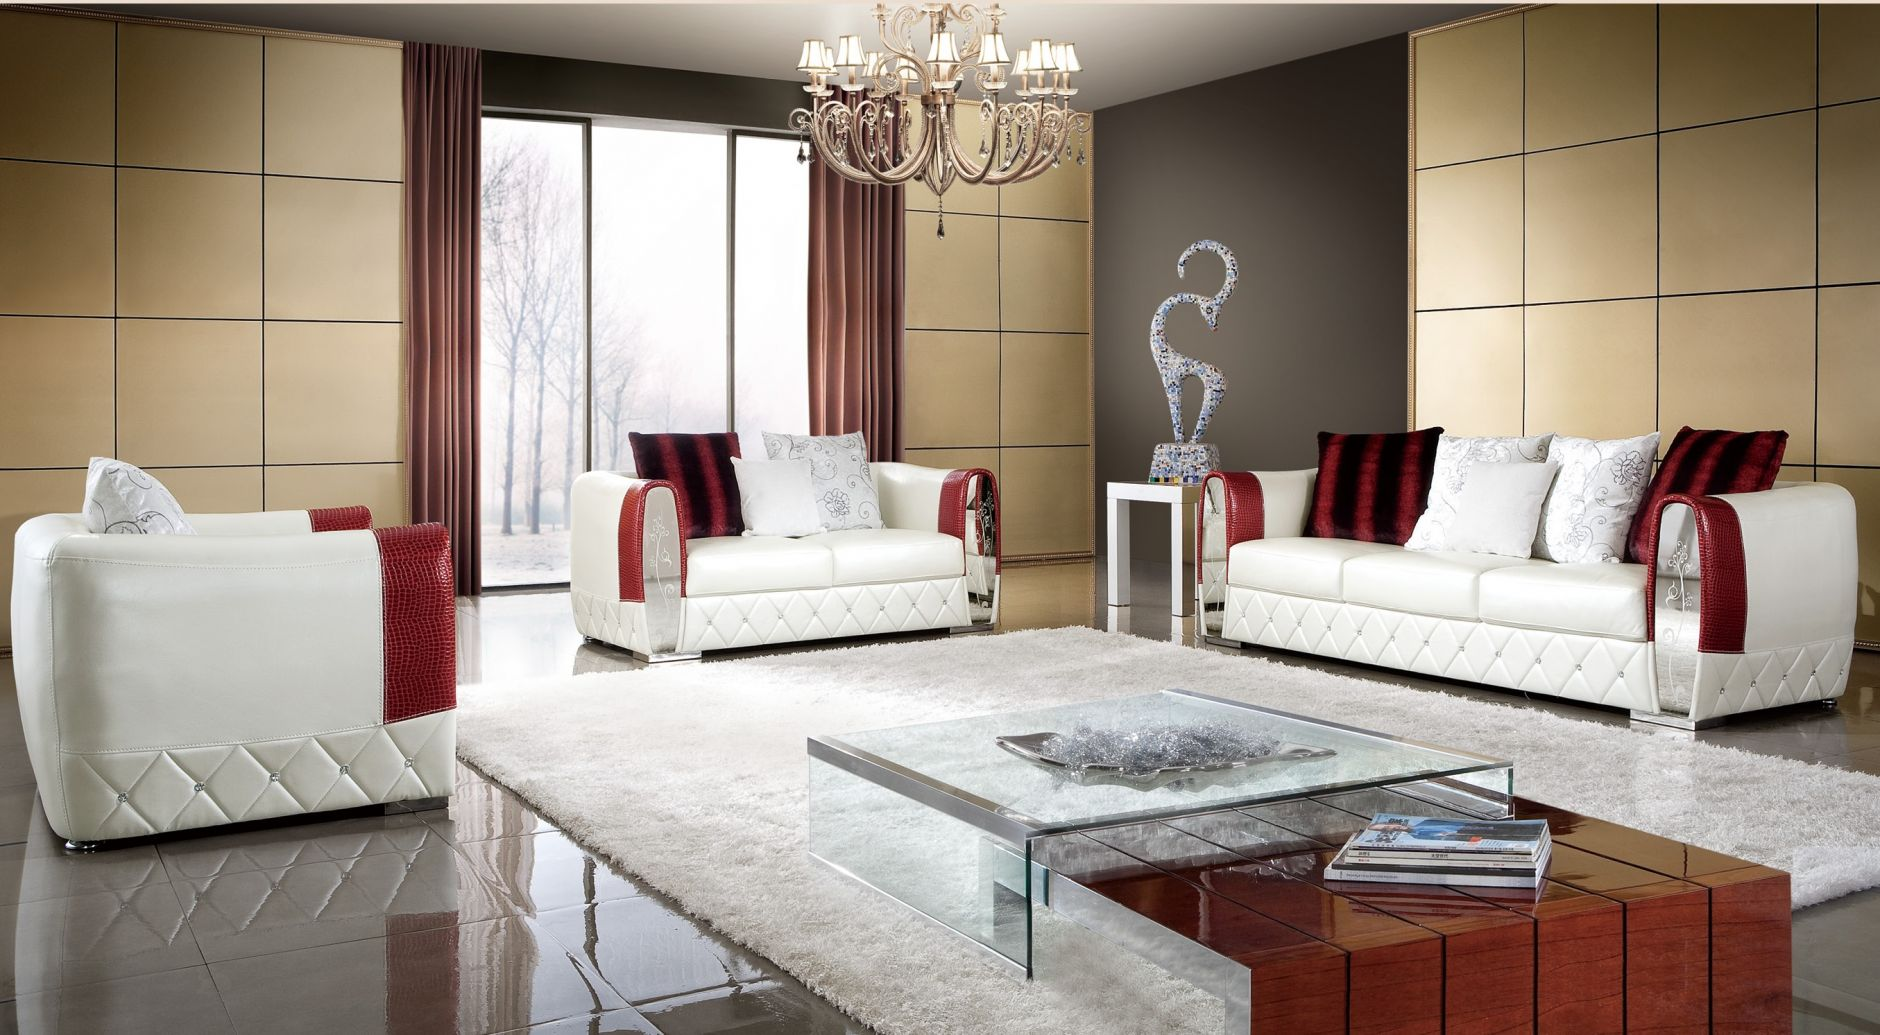 designer m bel designer sofas t160 seriedie m bel aus italien. Black Bedroom Furniture Sets. Home Design Ideas